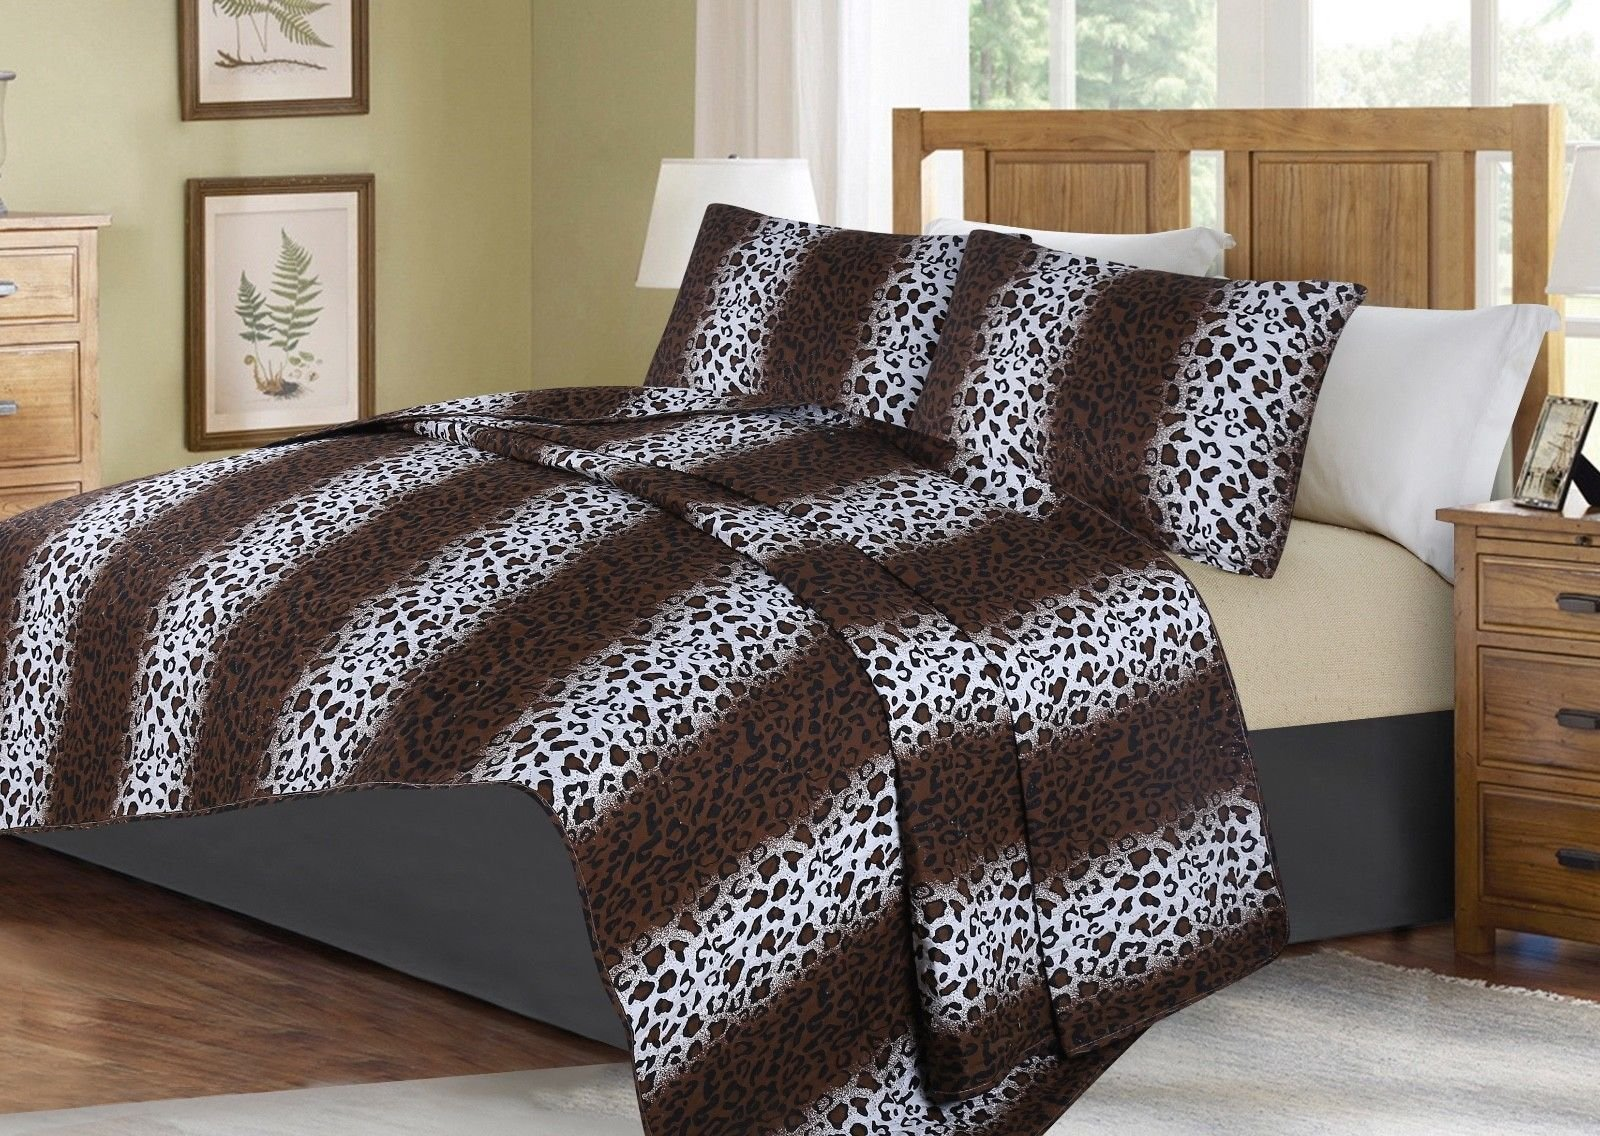 no!no! Printed Animal Designs Bedspread Coverlet Quilt Set with Pillow Shams Animal 2# Size King